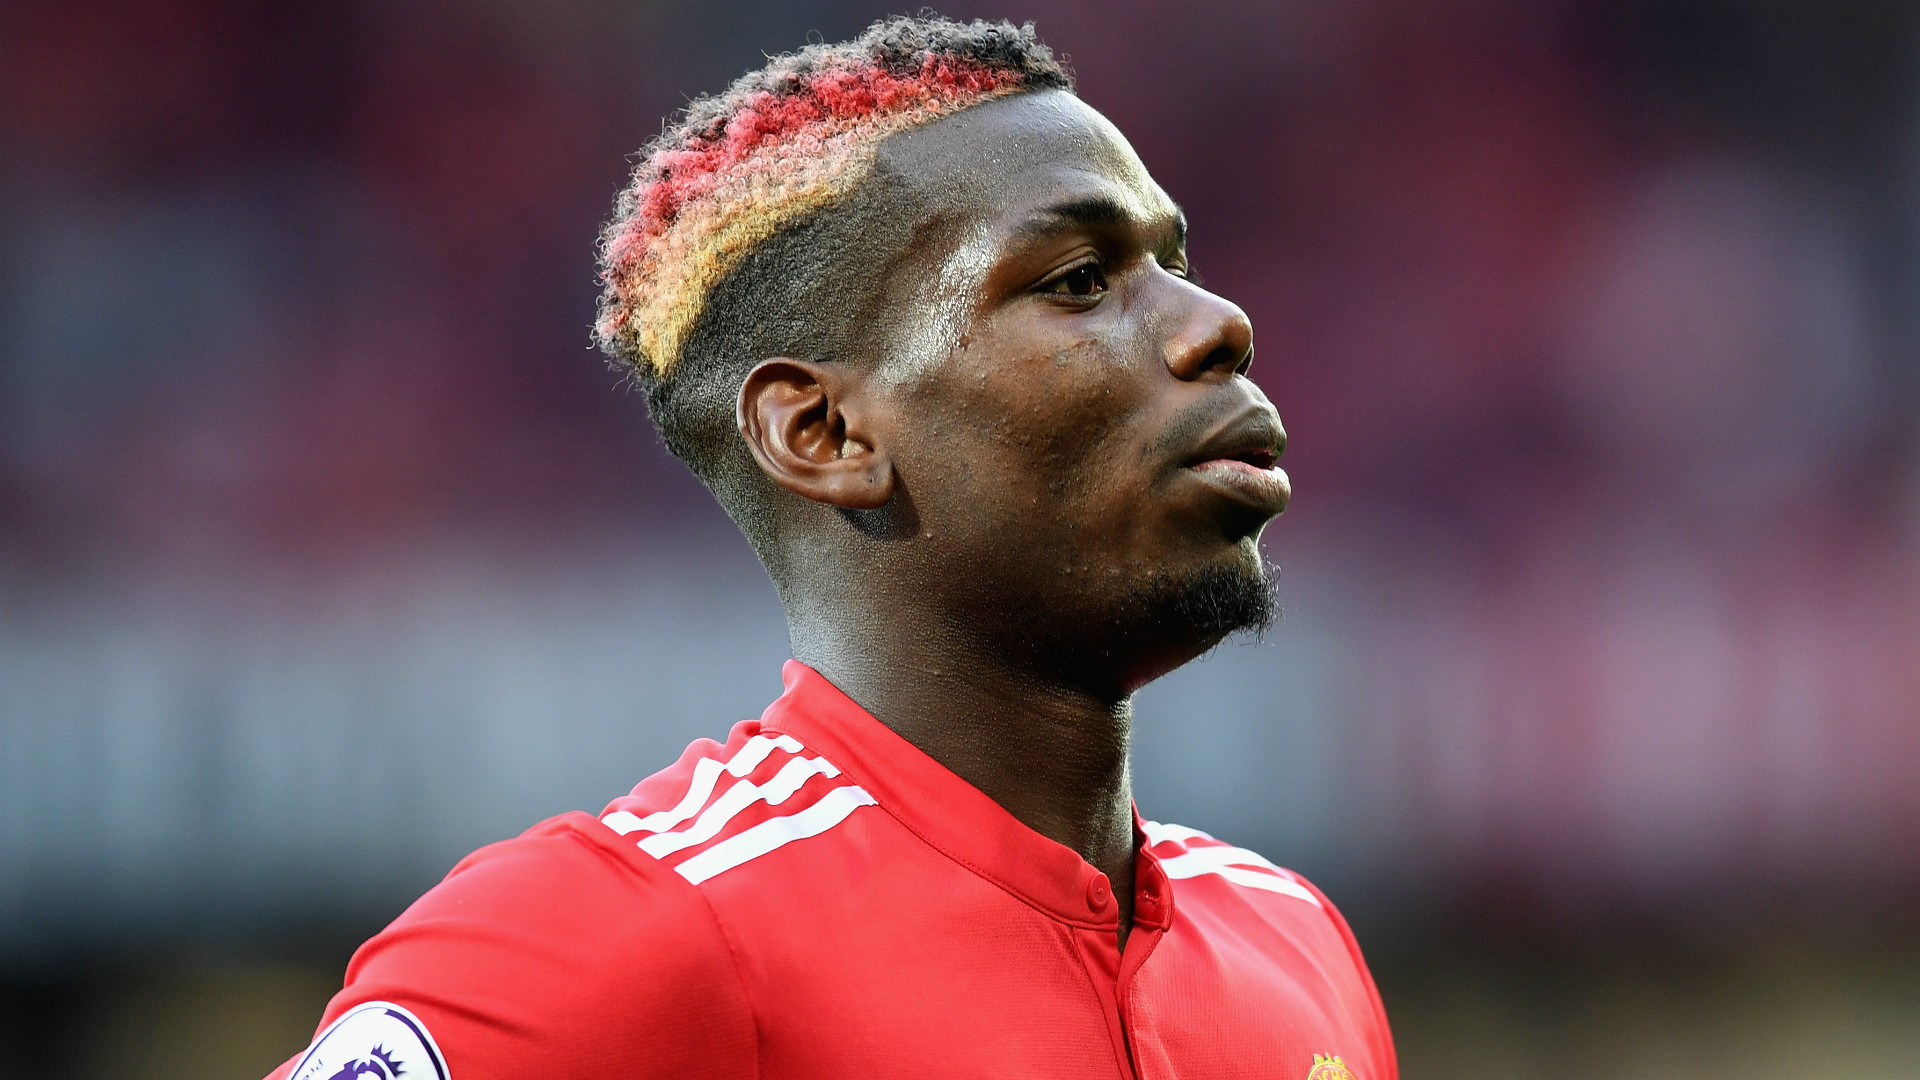 Pogba Reveals New Look As Man Utd Prepare For Return To Premier League Action